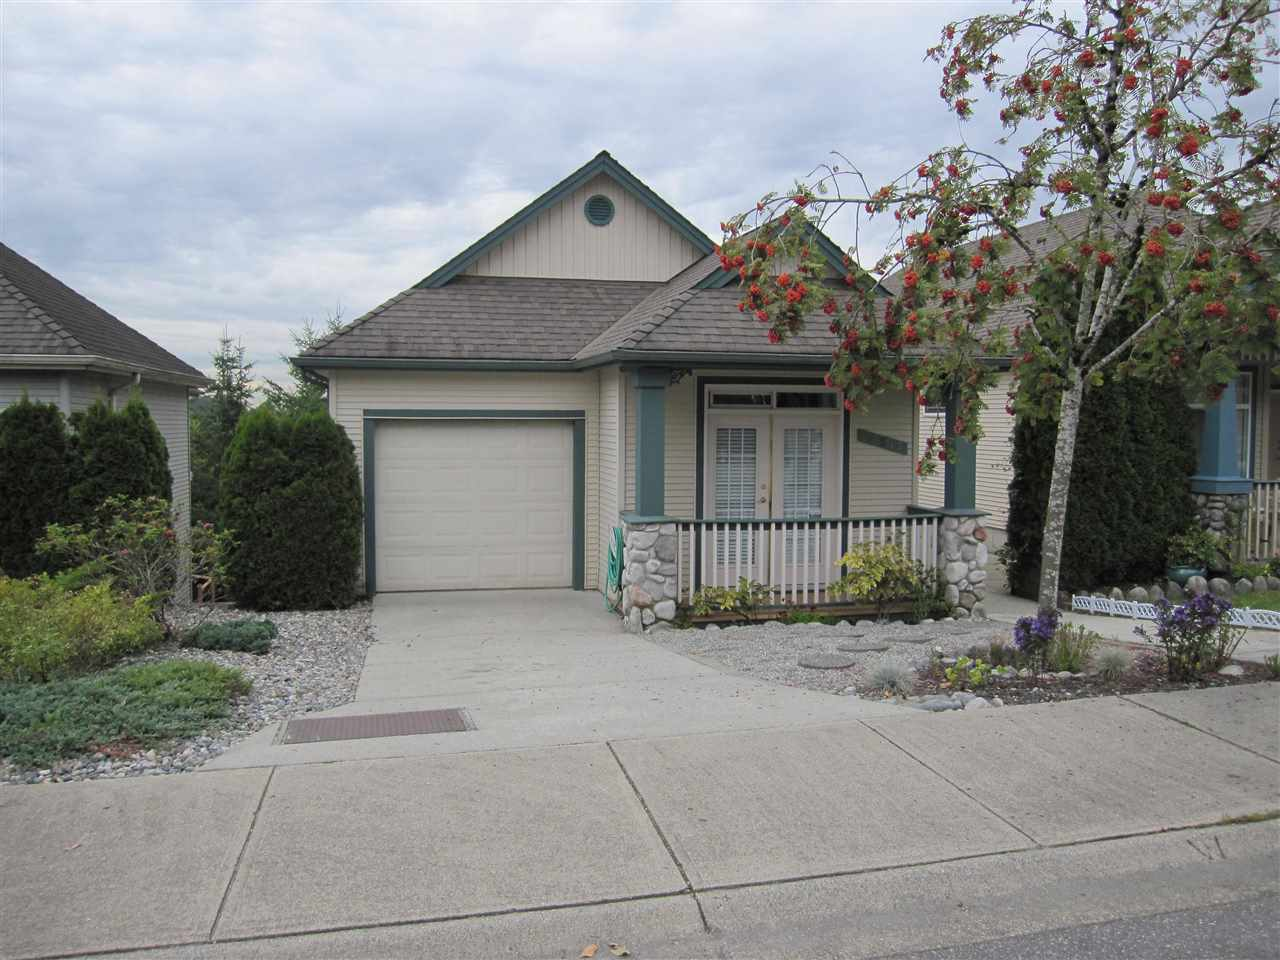 Main Photo: 11517 228 Street in Maple Ridge: East Central House for sale : MLS® # R2123978